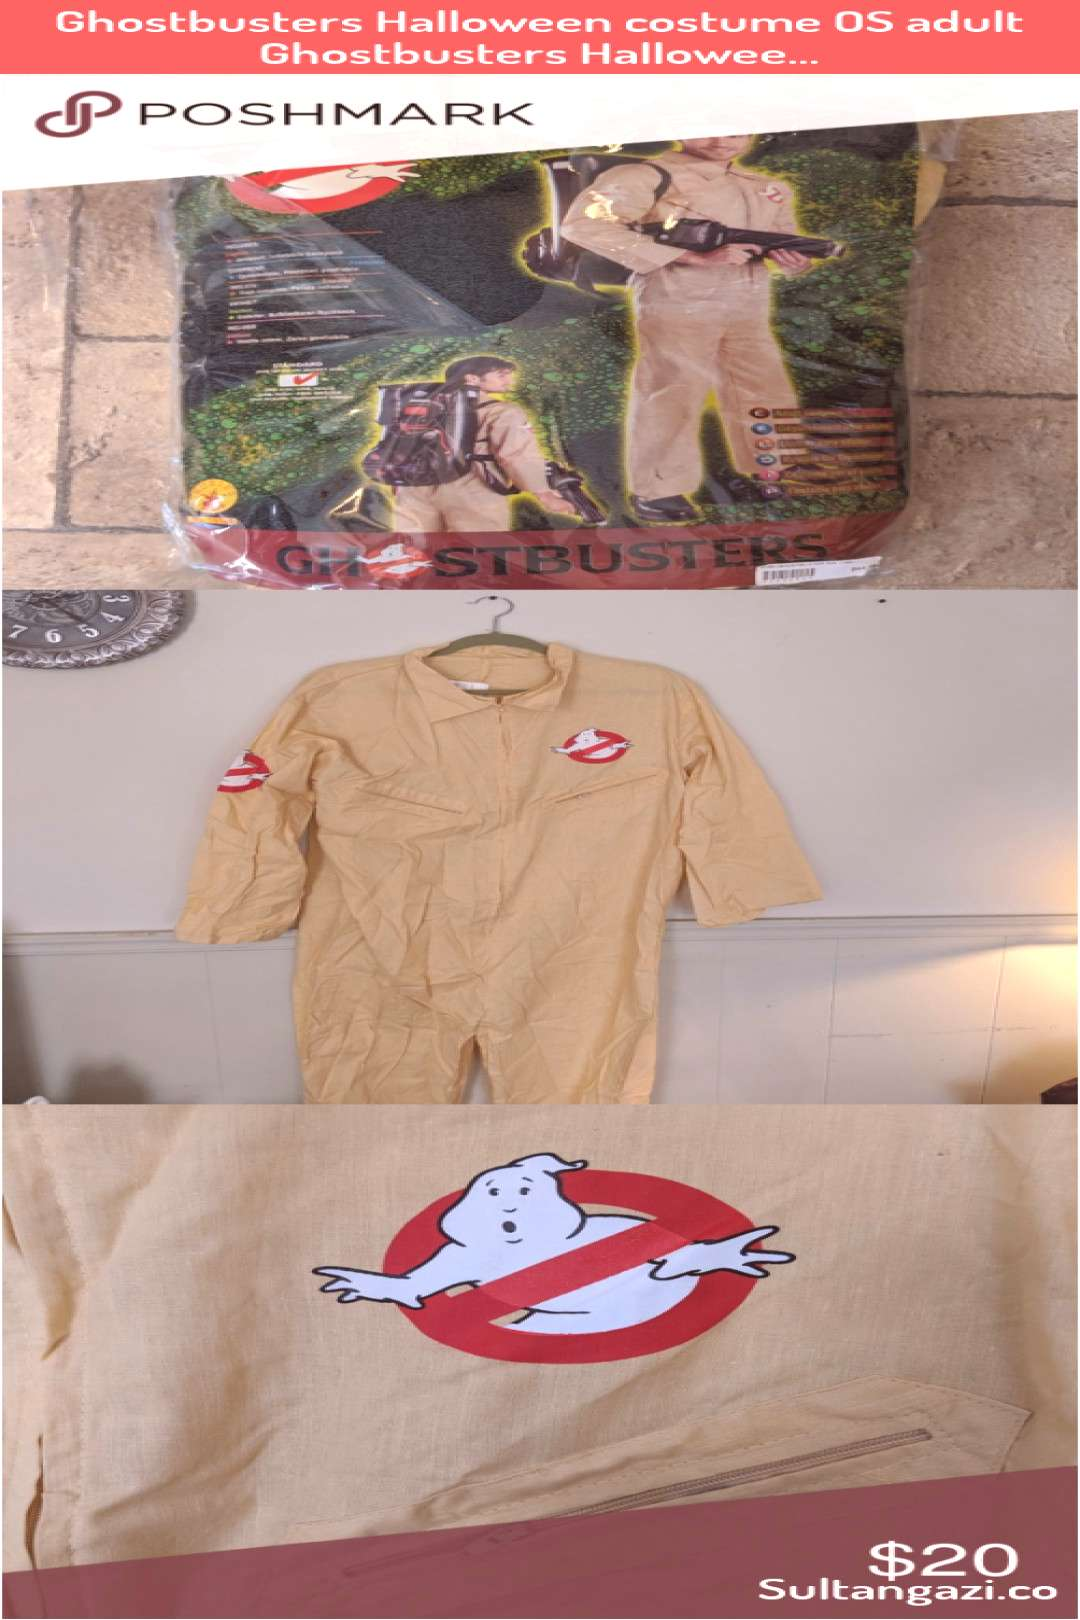 Ghostbusters Halloween costume OS adult Ghostbusters Hallowee  Ghostbusters Halloween costume OS